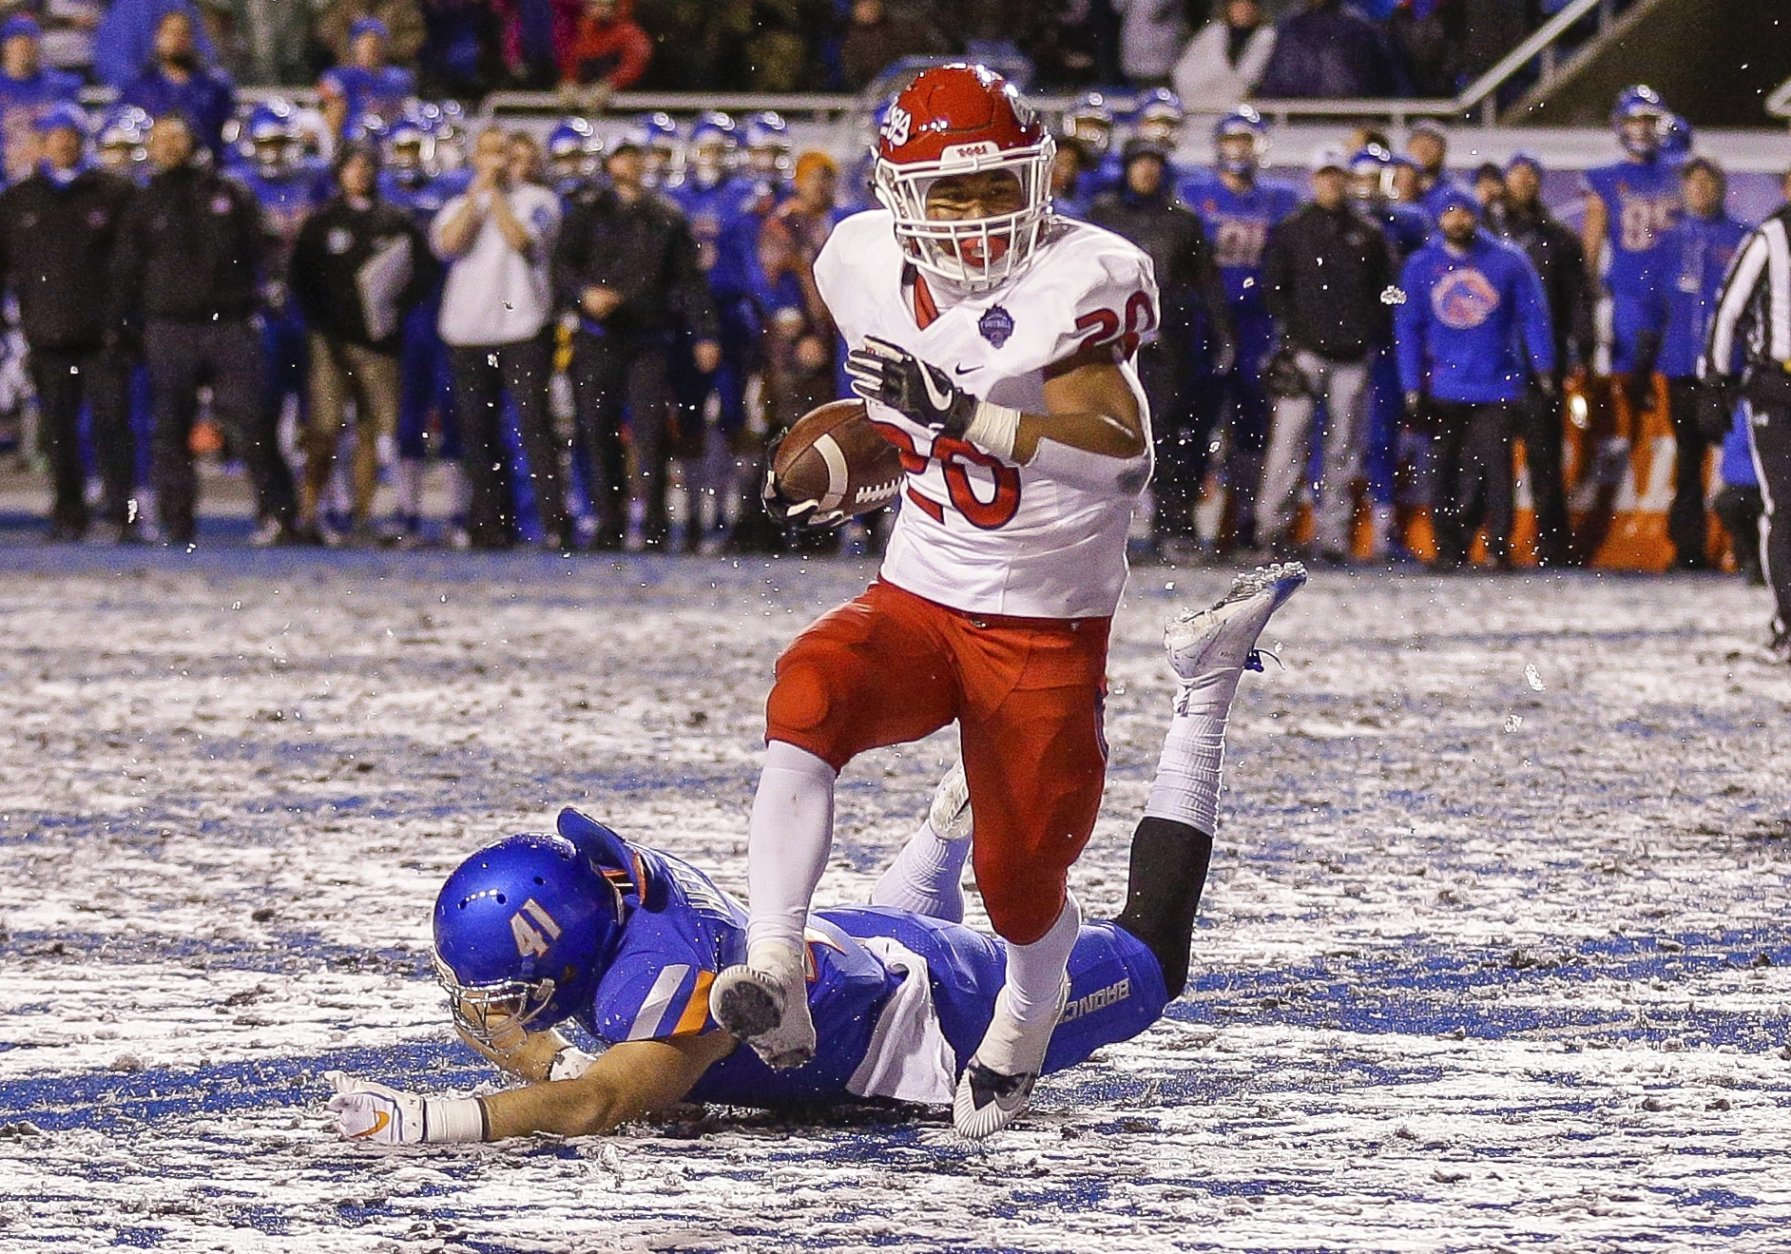 Fresno State running back Ronnie Rivers (20) runs past the diving tackle attempt by Boise State linebacker Will Heffner (41) for a touchdown in overtime in an NCAA college football game for the Mountain West championship, Saturday, Dec. 1, 2018, in Boise, Idaho. Fresno State won 19-16. (AP Photo/Steve Conner)